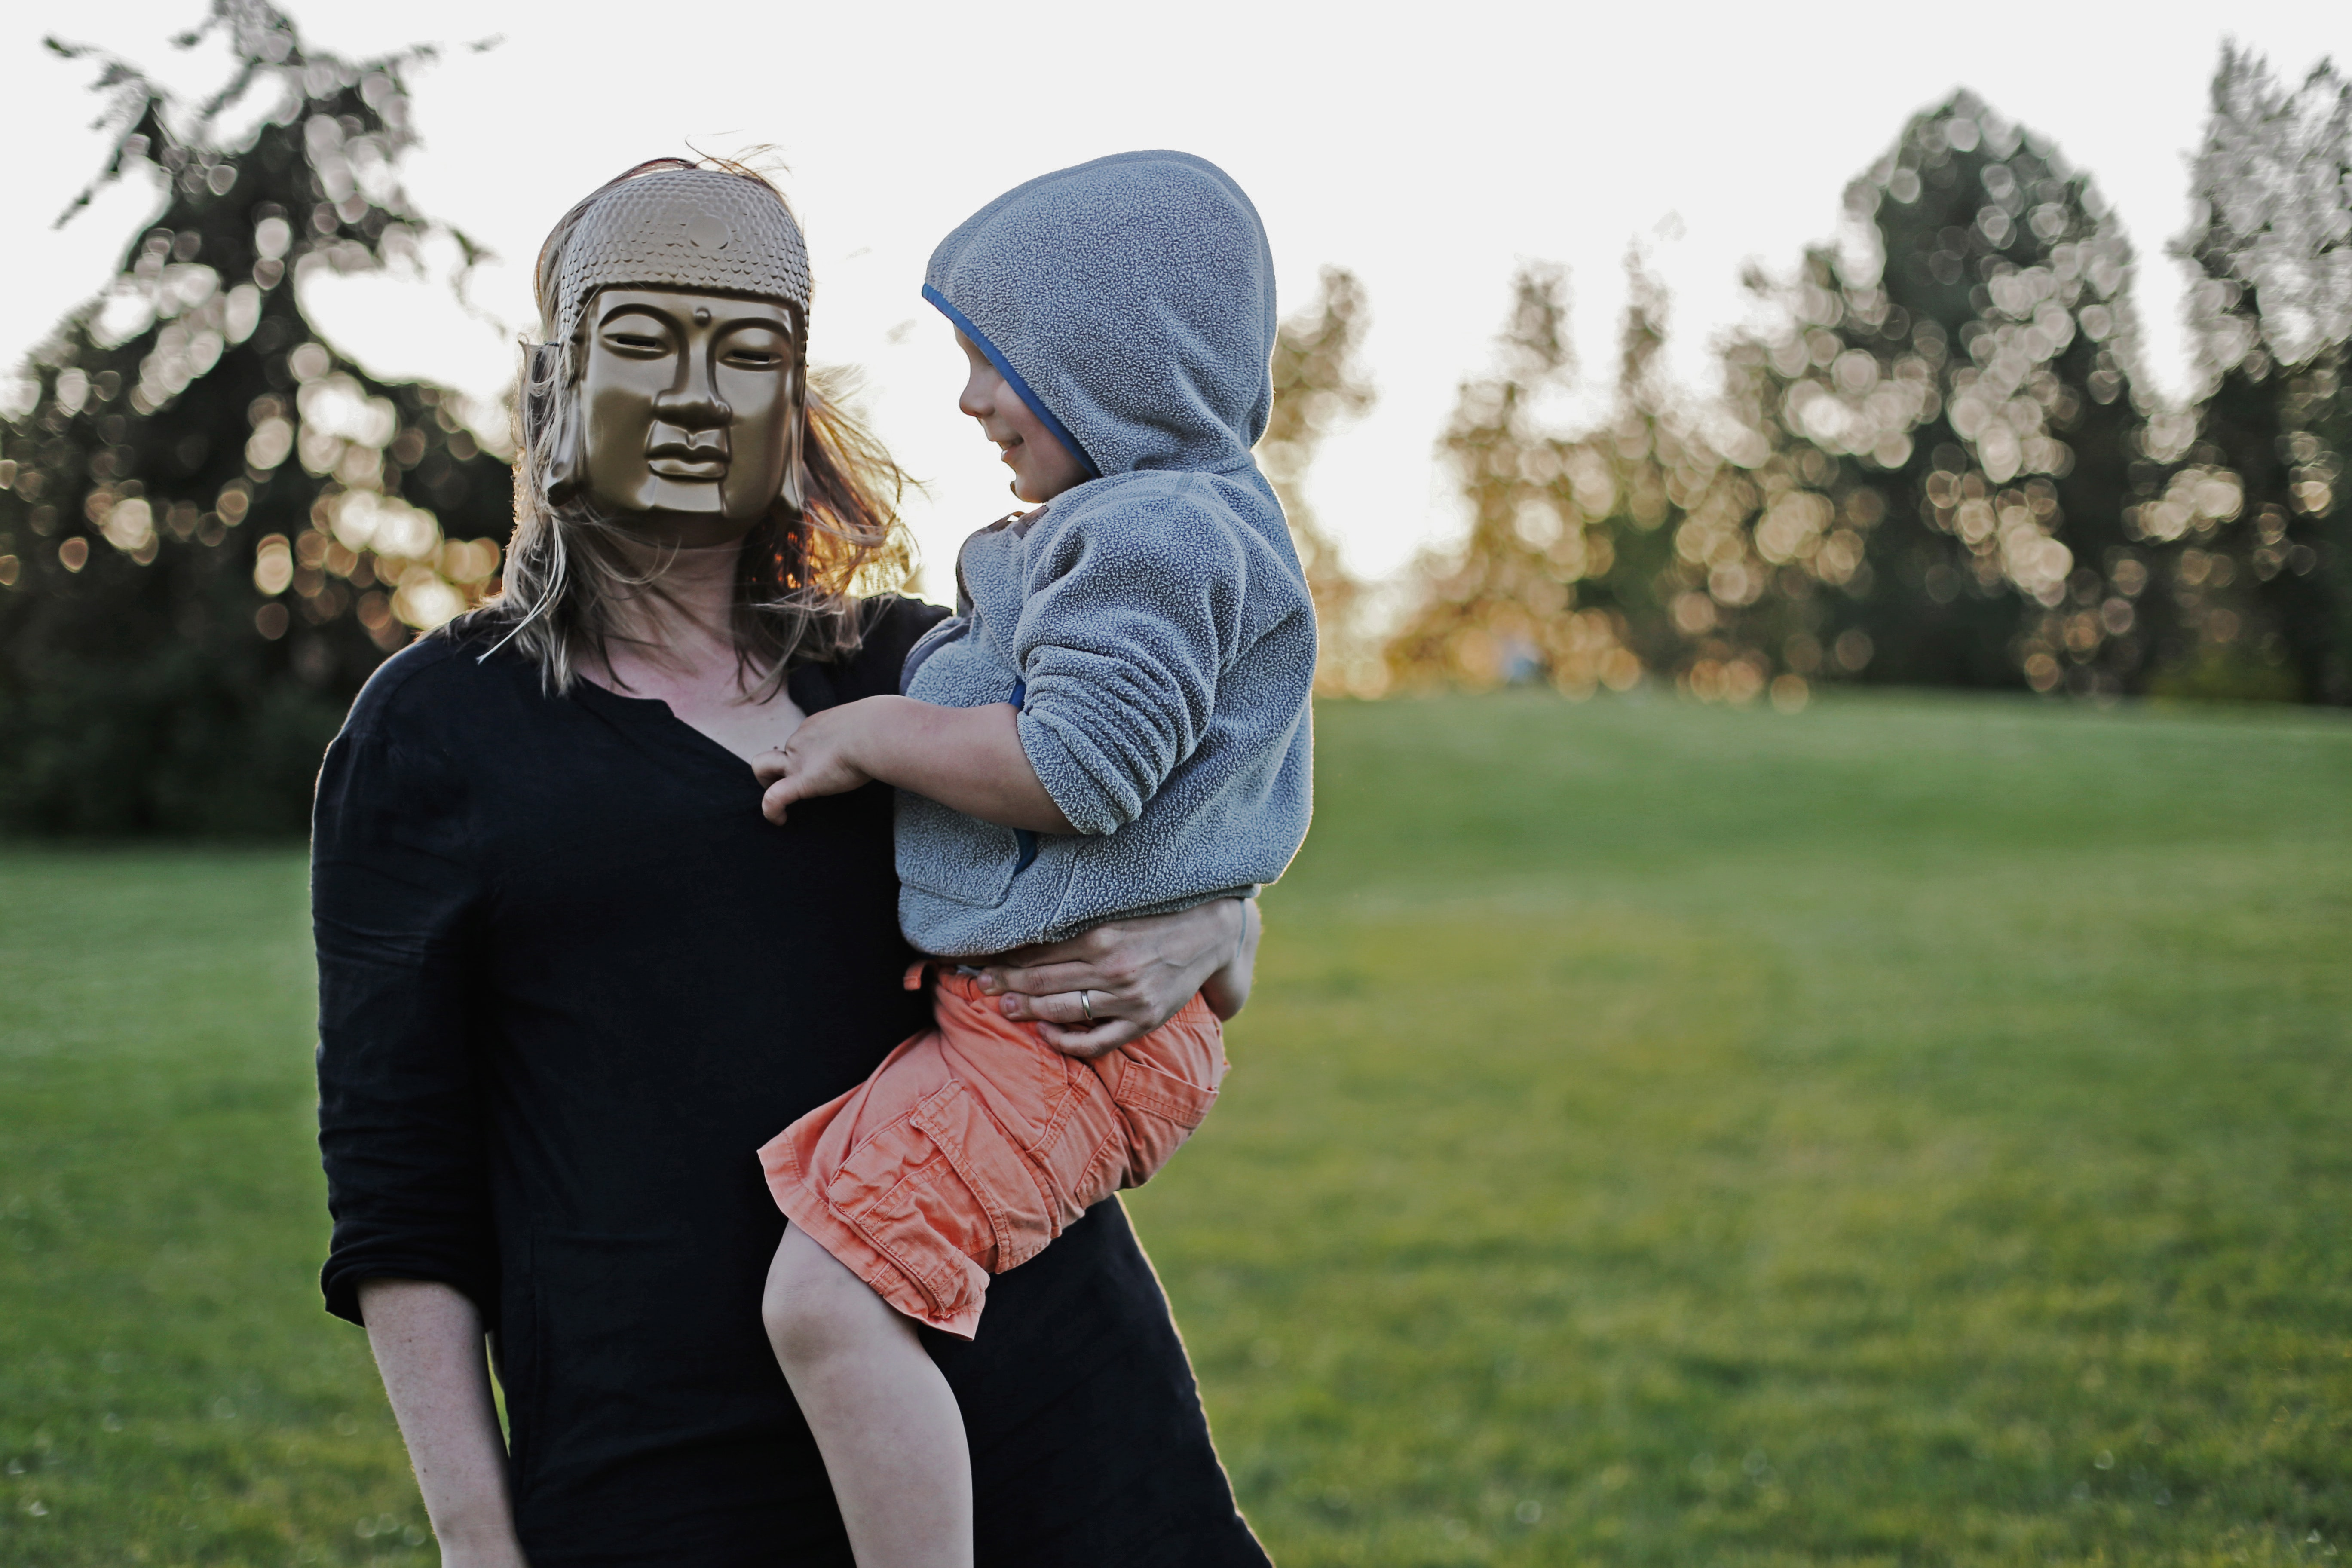 A woman wearing a Buddha mask is carrying a child wearing a hooded jacket.